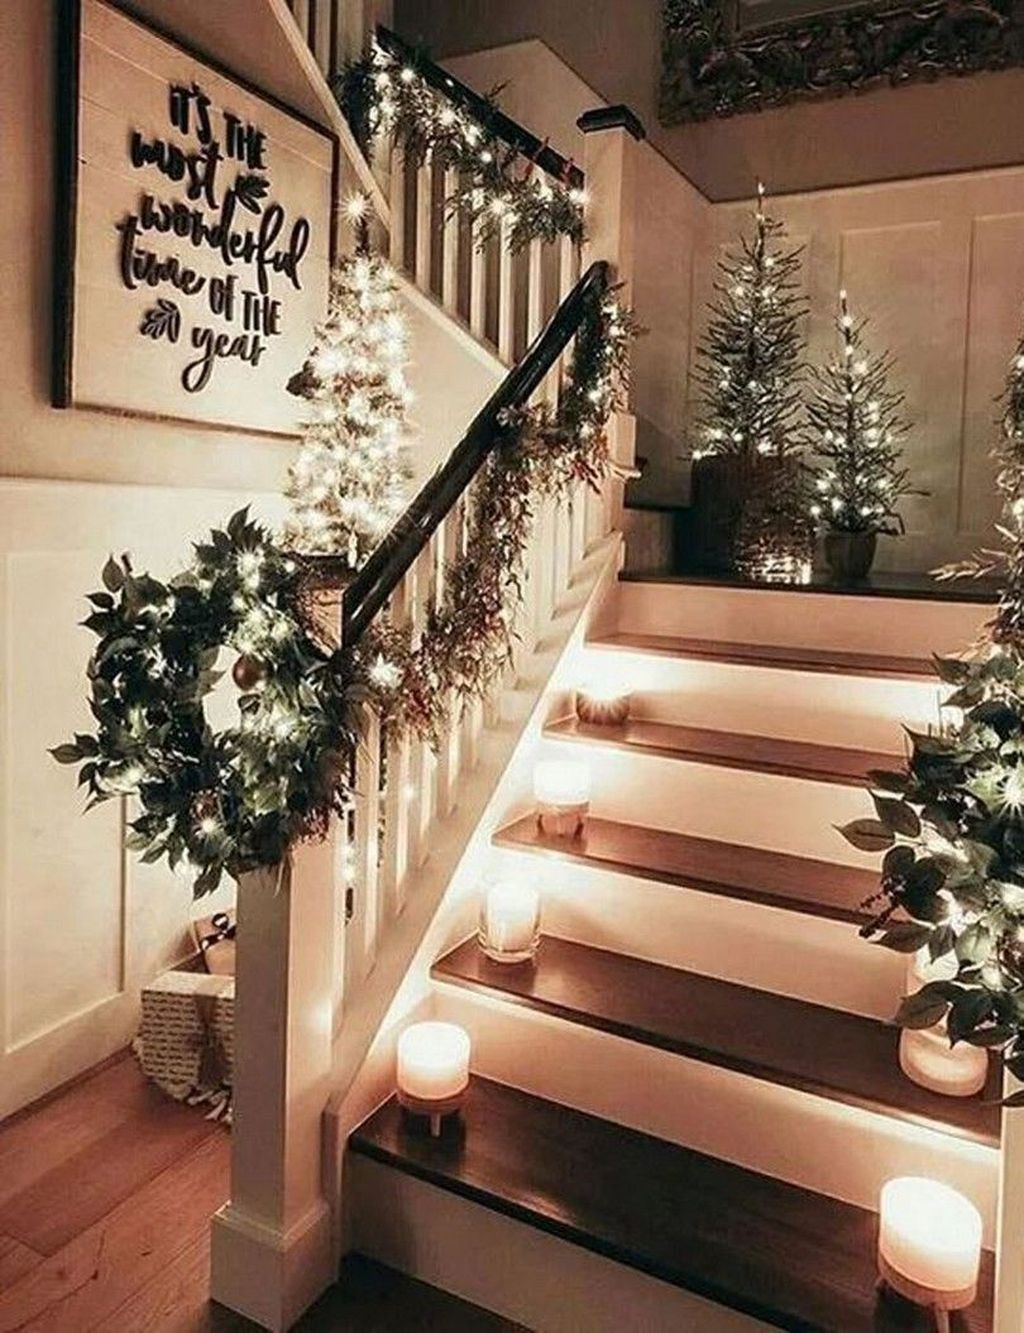 Pin By Lauren Livengood On Home Decor In 2021 Christmas Staircase Christmas Decorations Rustic Christmas Decorations